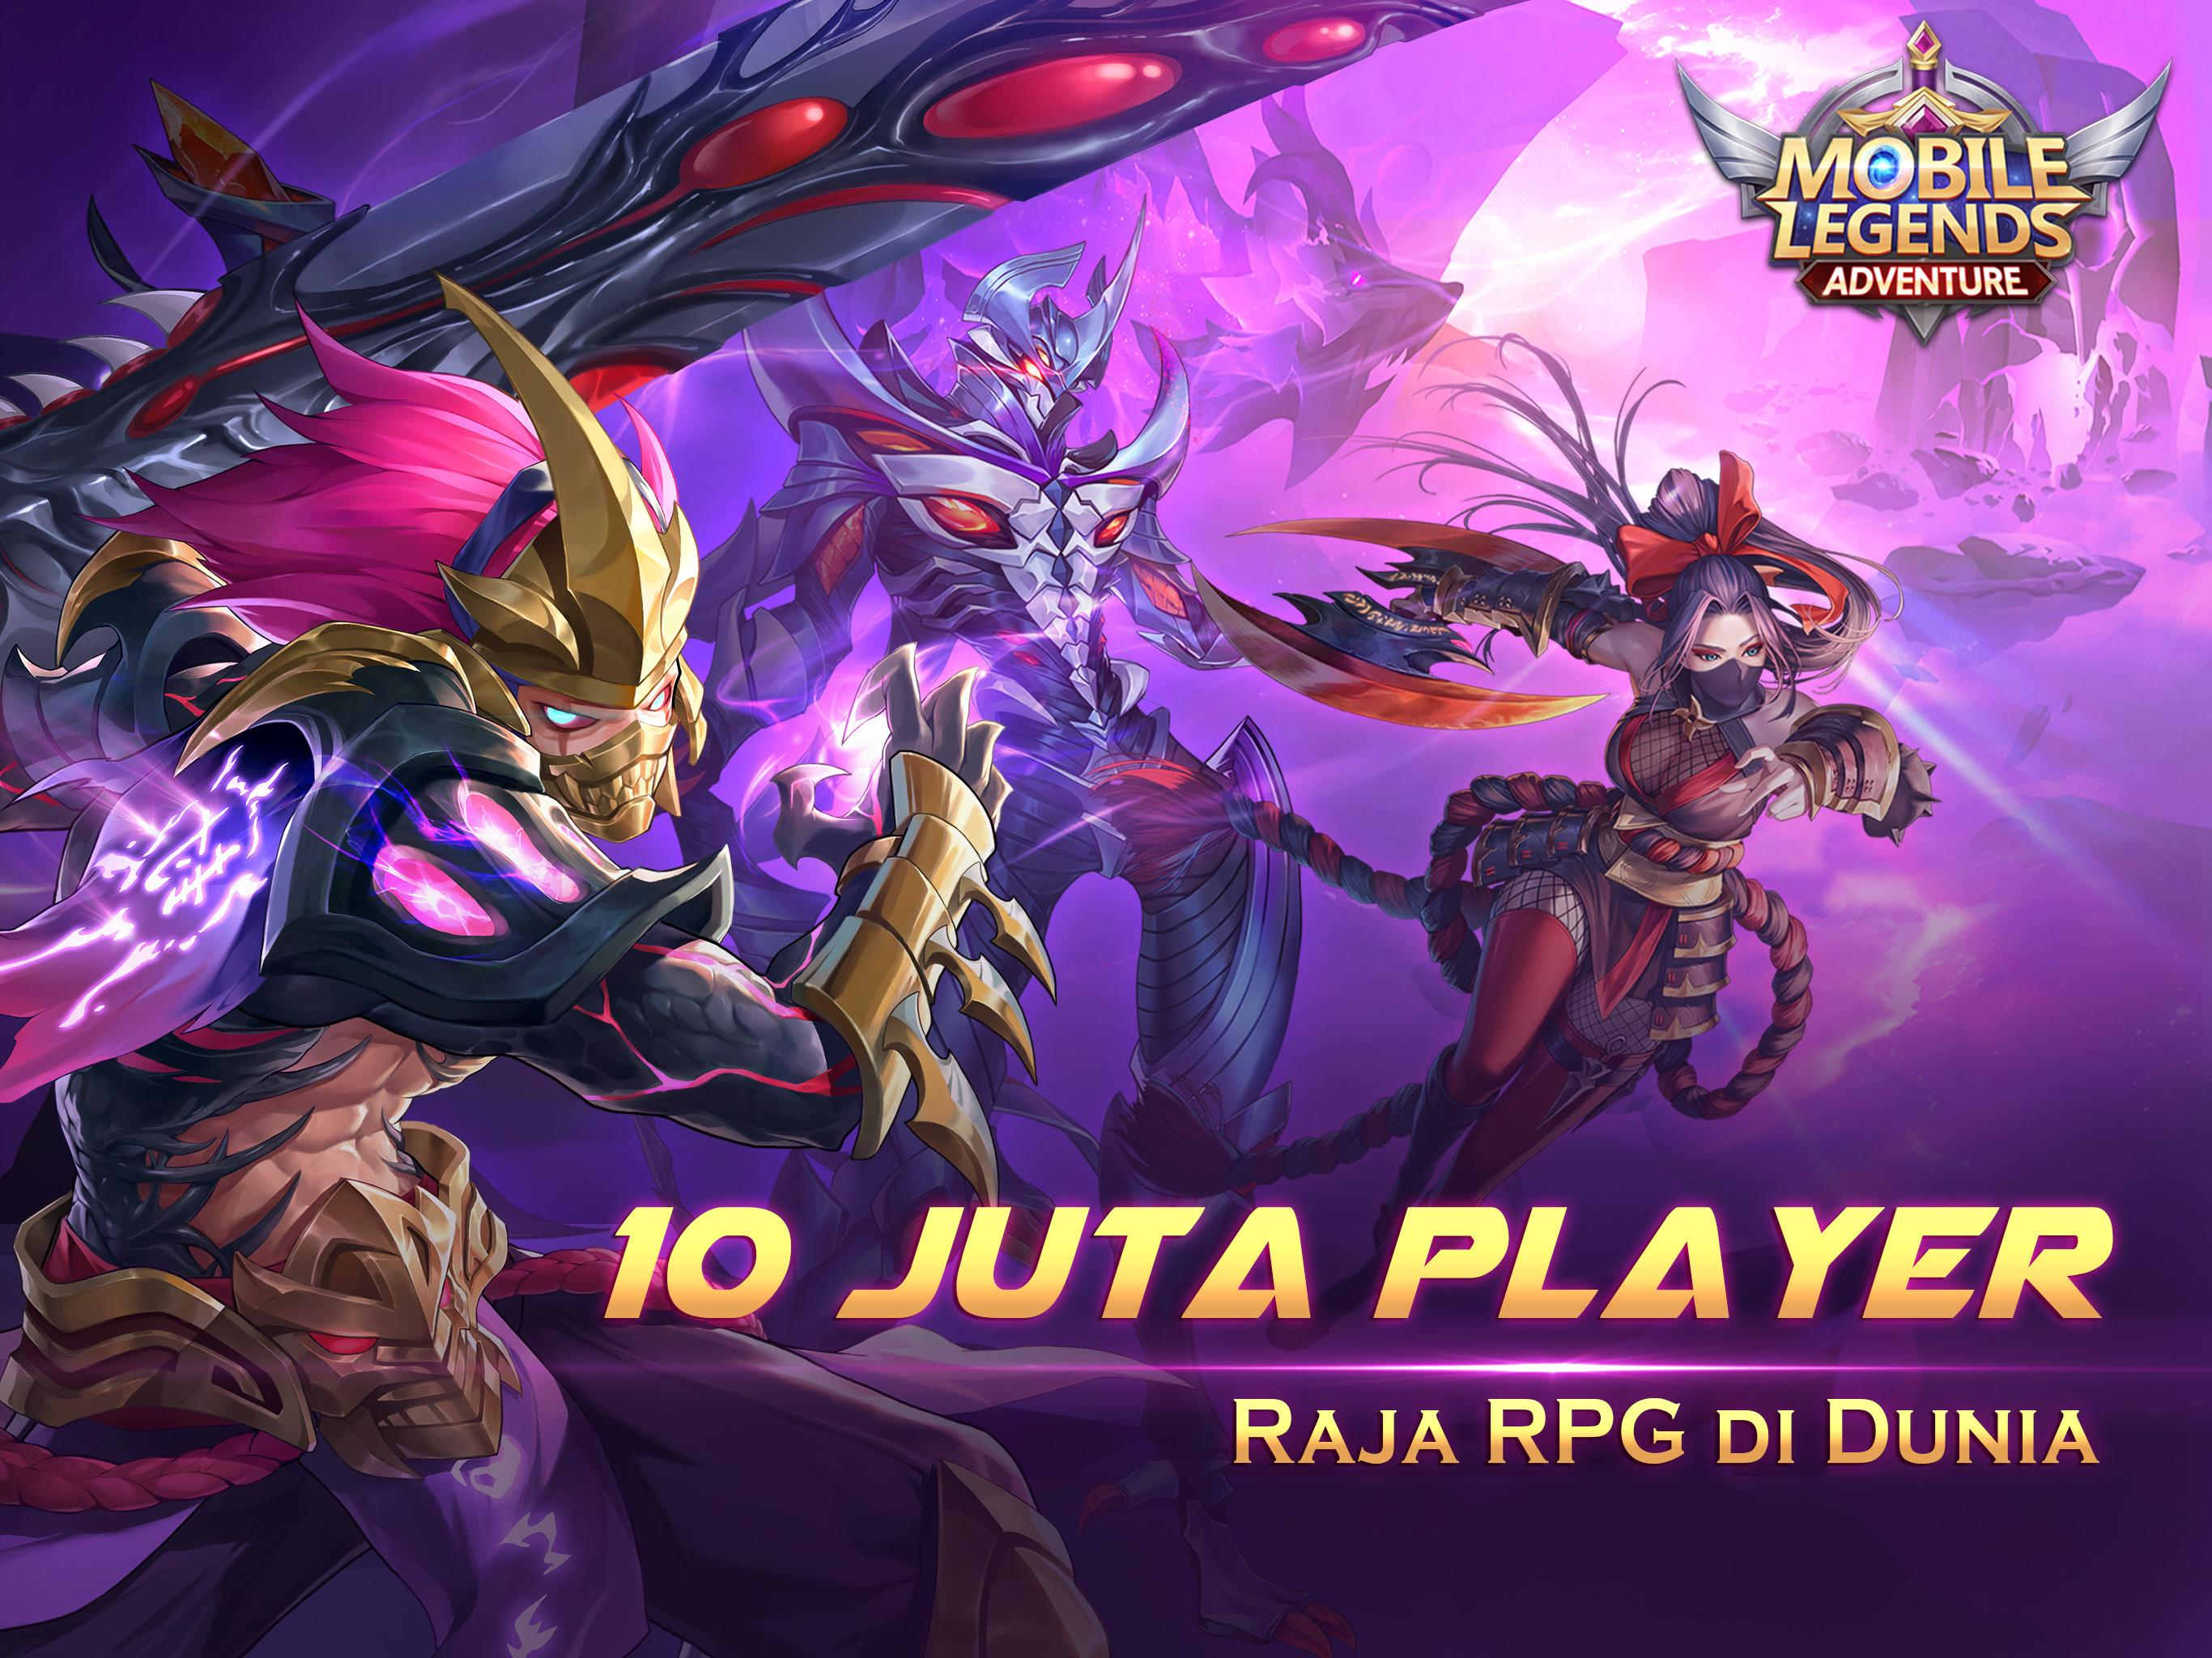 Mobile Legends Adventure For Android Apk Download